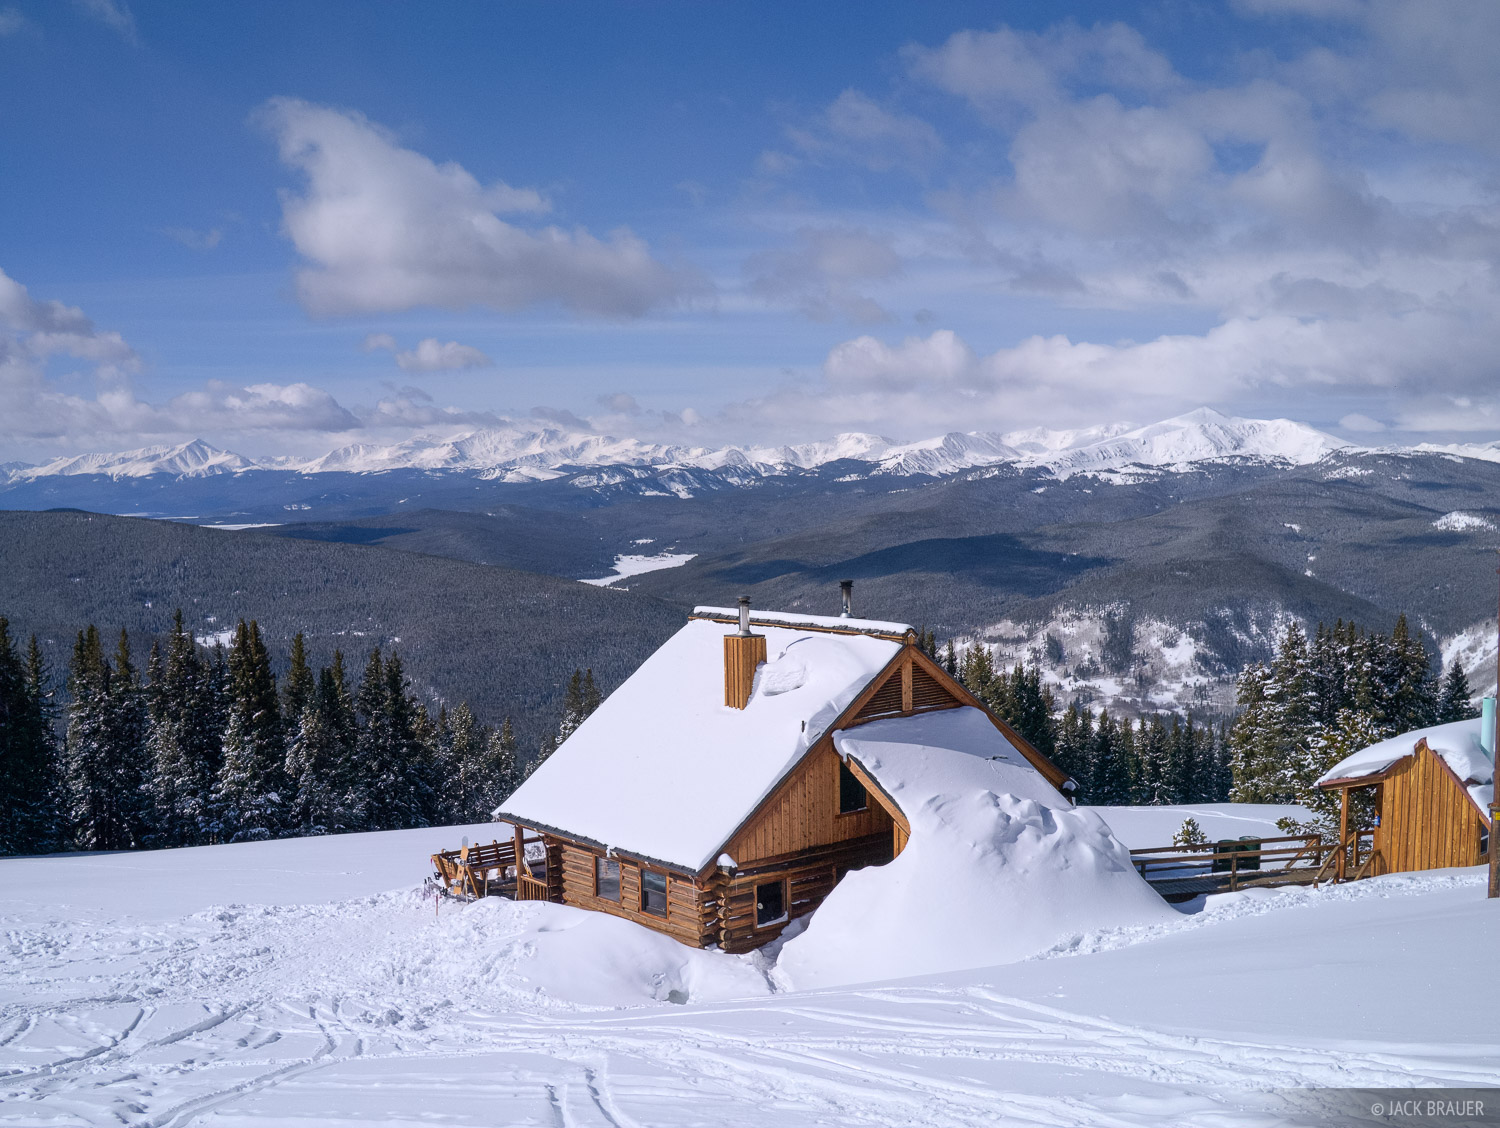 Jackal Hut, Gore Range, Mt. Elbert, Sawatch Range, Colorado, winter, photo